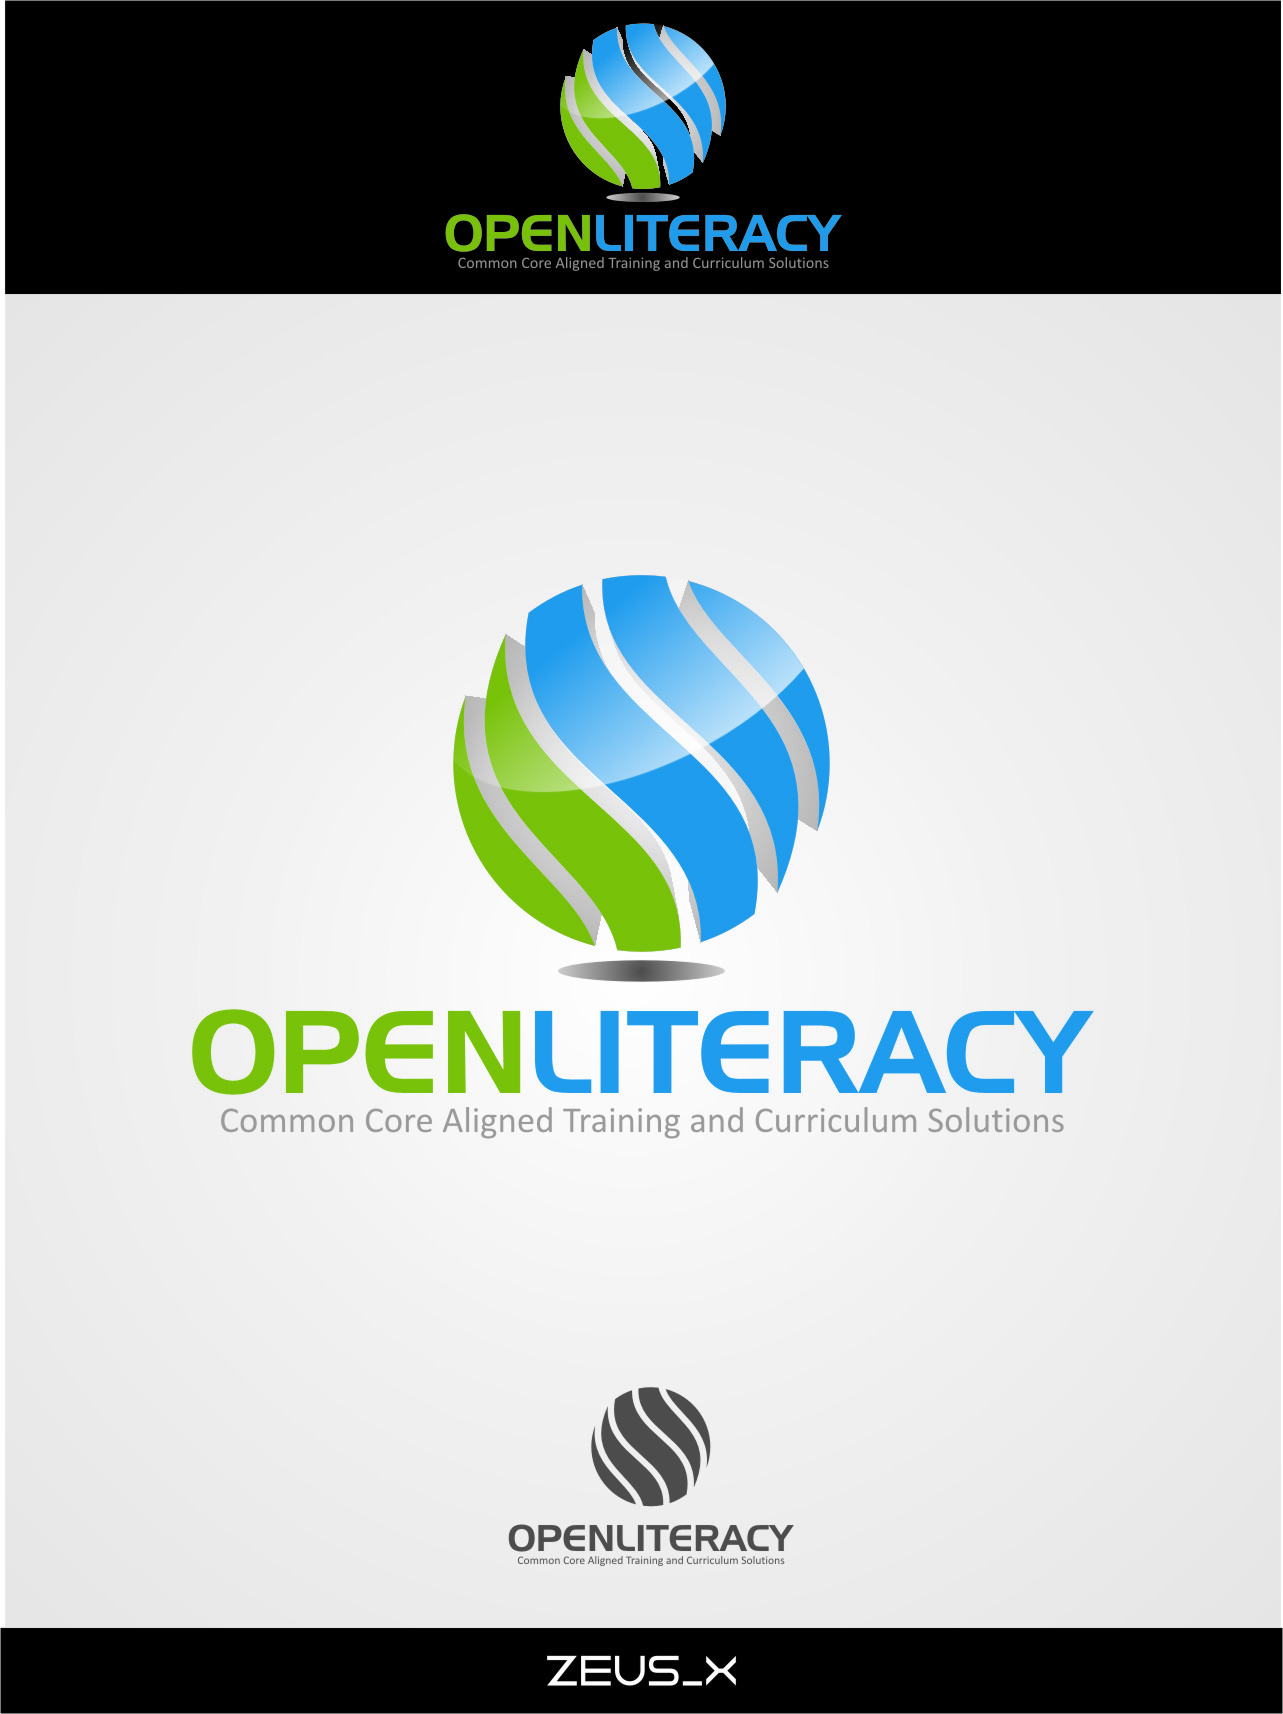 Logo Design by Ngepet_art - Entry No. 54 in the Logo Design Contest Inspiring Logo Design for OpenLiteracy.